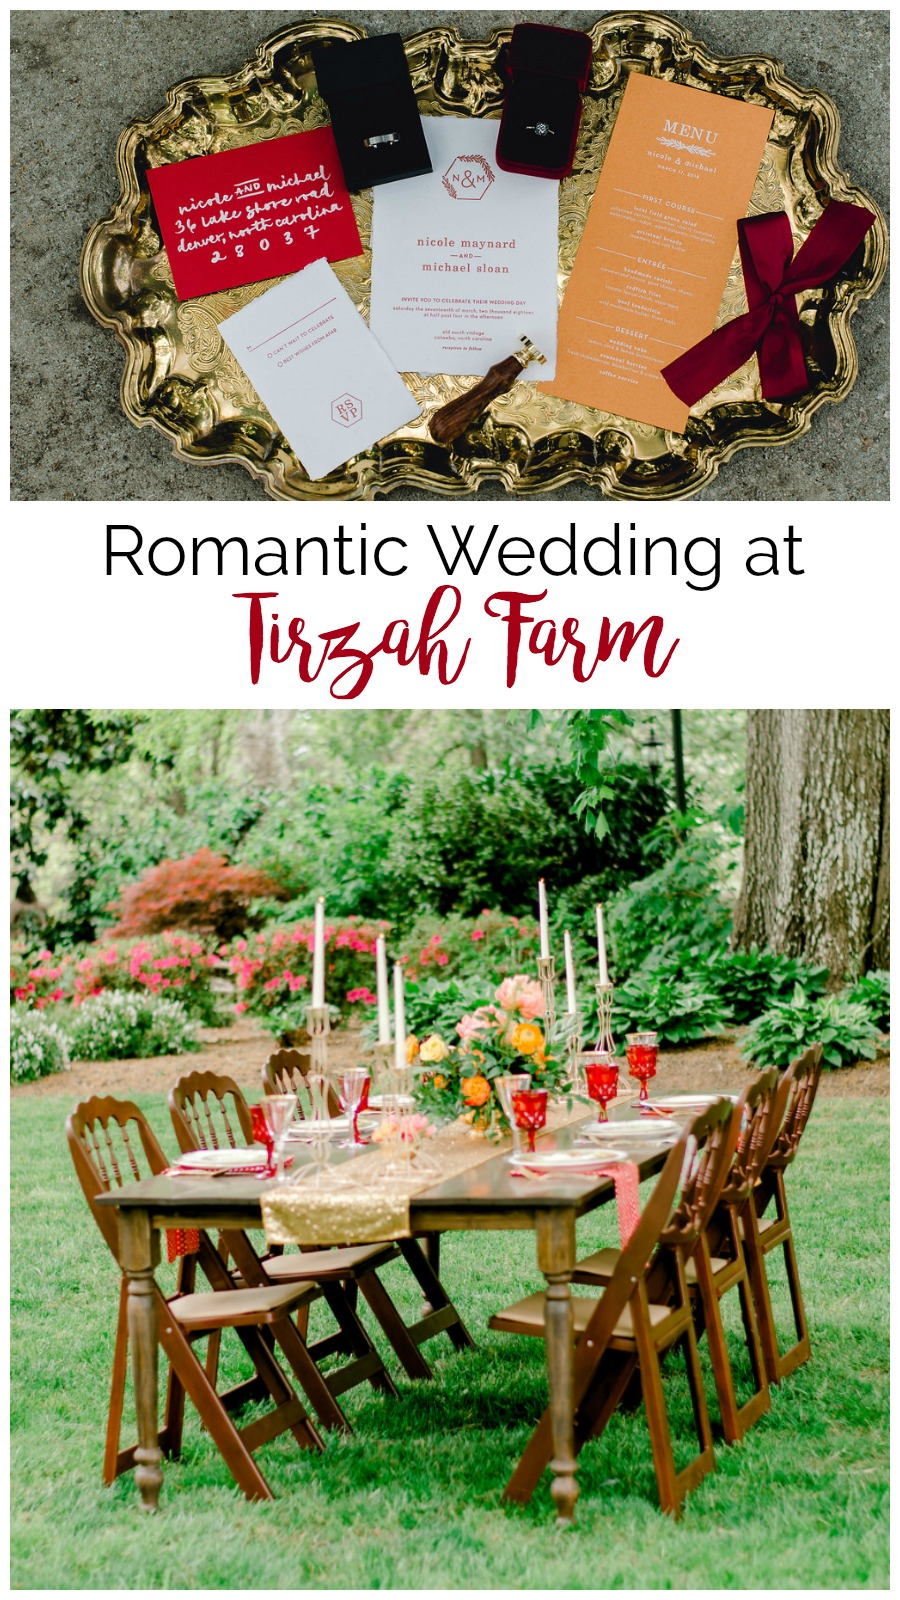 Burgundy and Gold Romantic Styled Shoot at Tirzah Farm   Palmetto State Weddings   Jessica Drew Photography   Southern farm wedding   bridal pantsuit   modern wedding inspiration